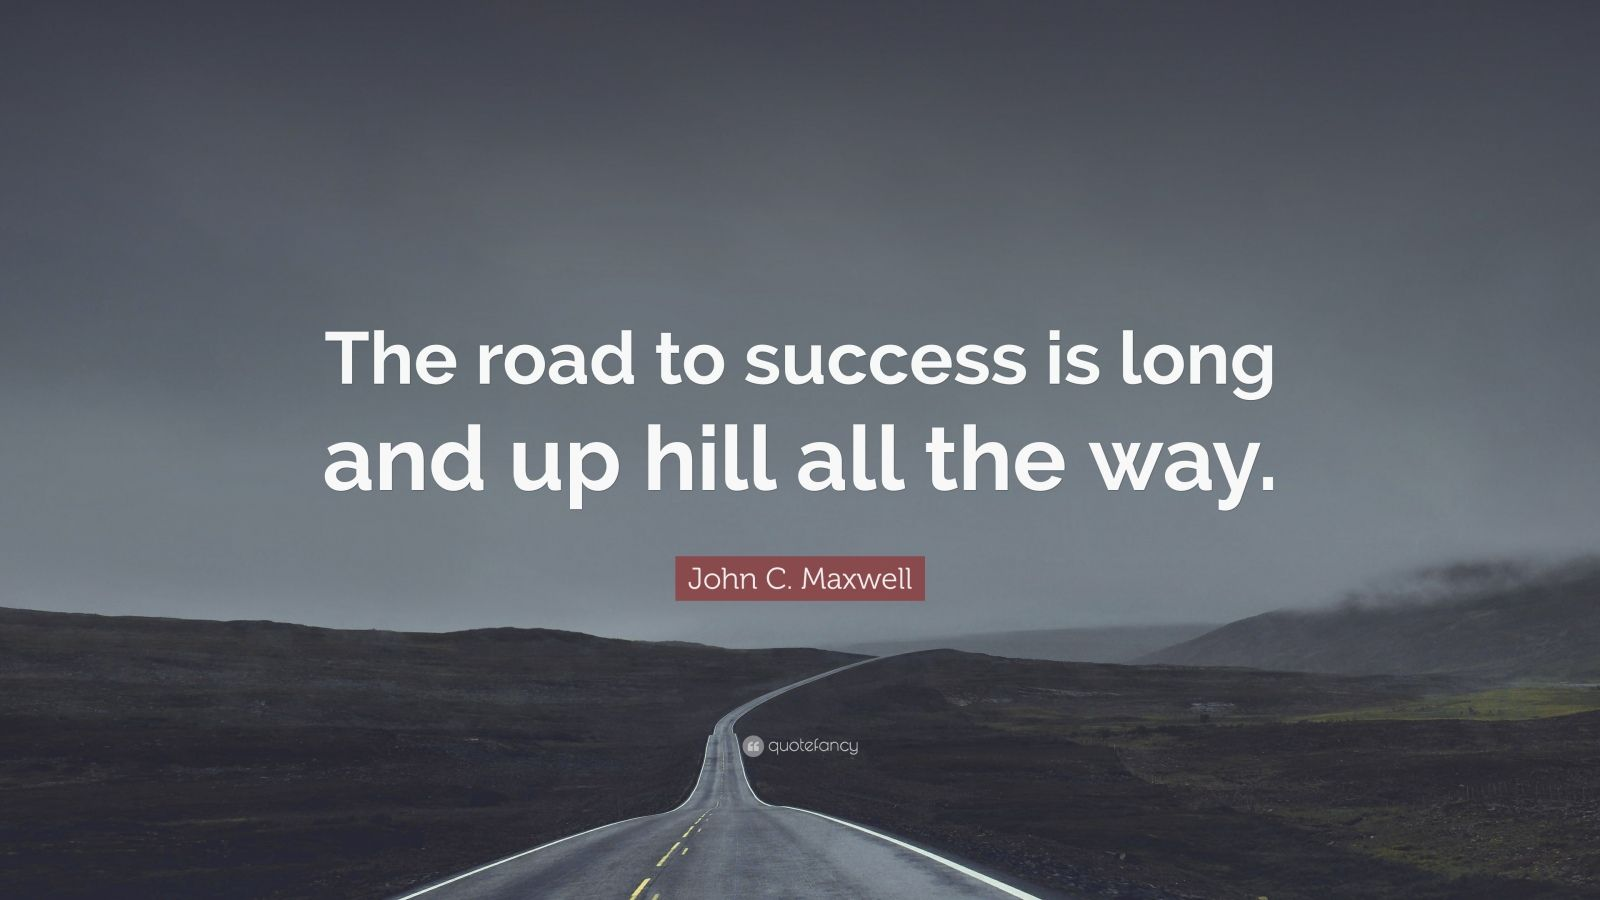 John C Maxwell Quote The Road To Success Is Long And Up Hill All